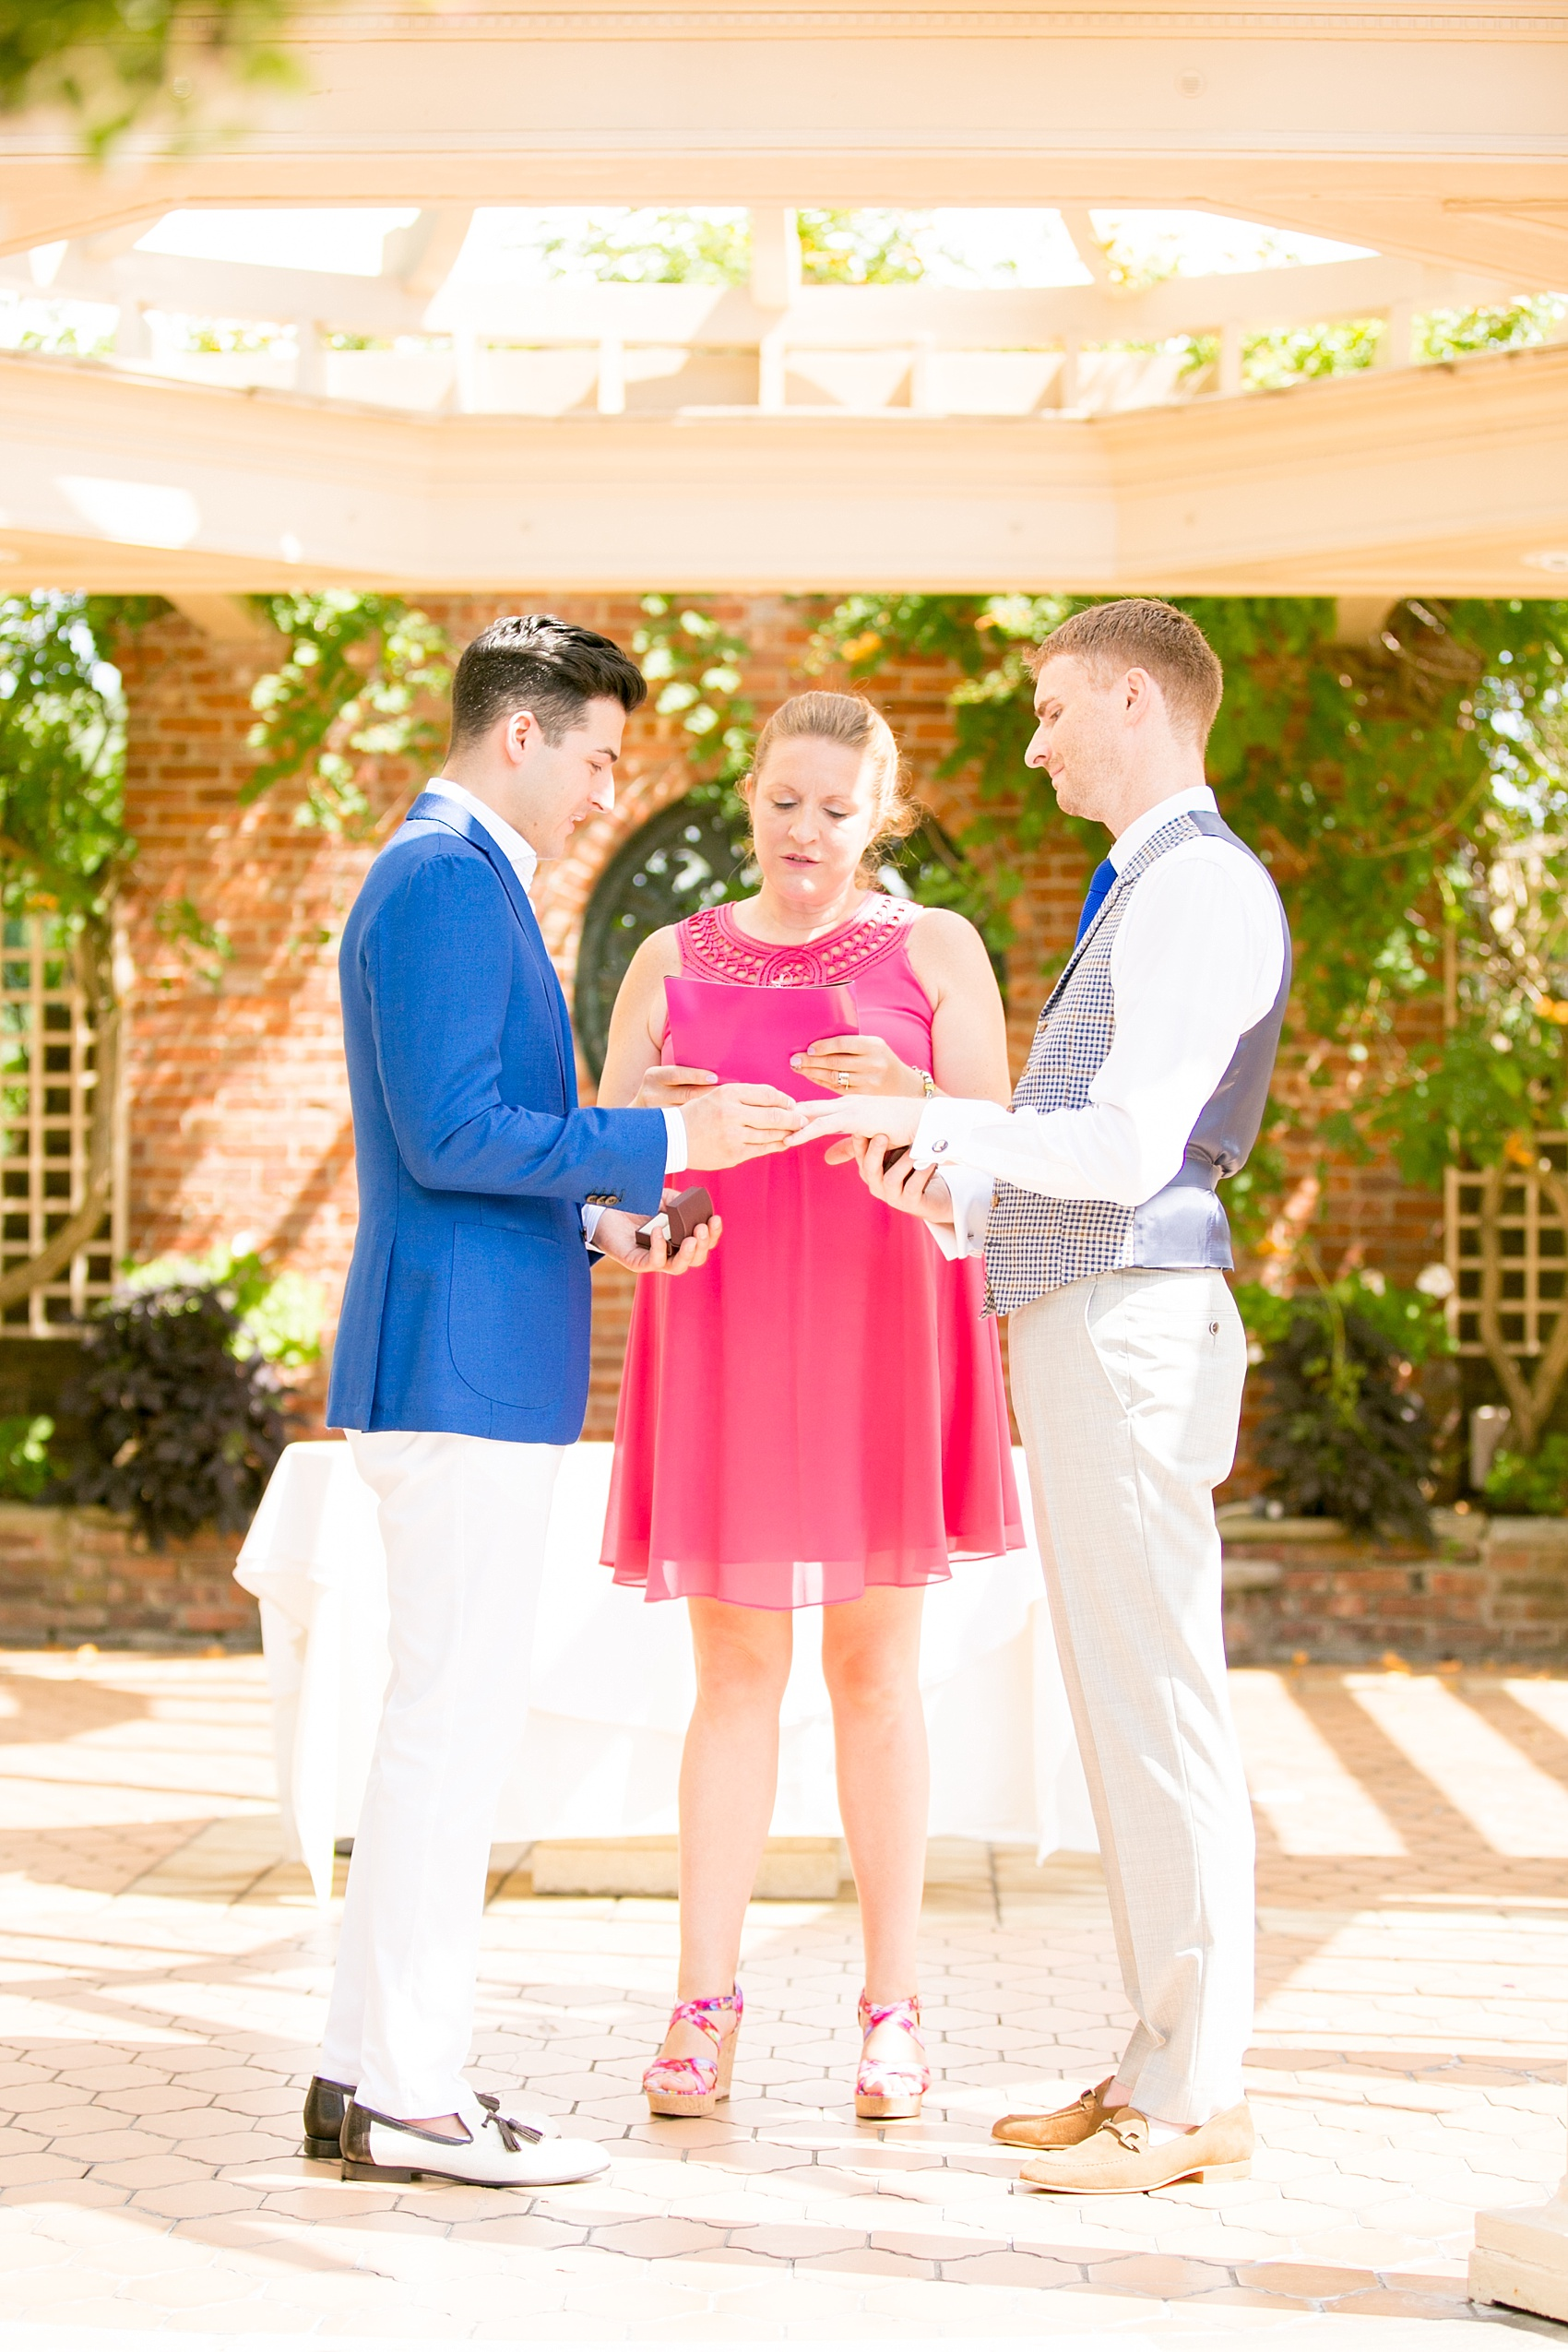 Mikkel Paige Photography photos of a gay wedding at The Manor in West Orange, NJ. Image of grooms exchanging rings during their outdoor ceremony.